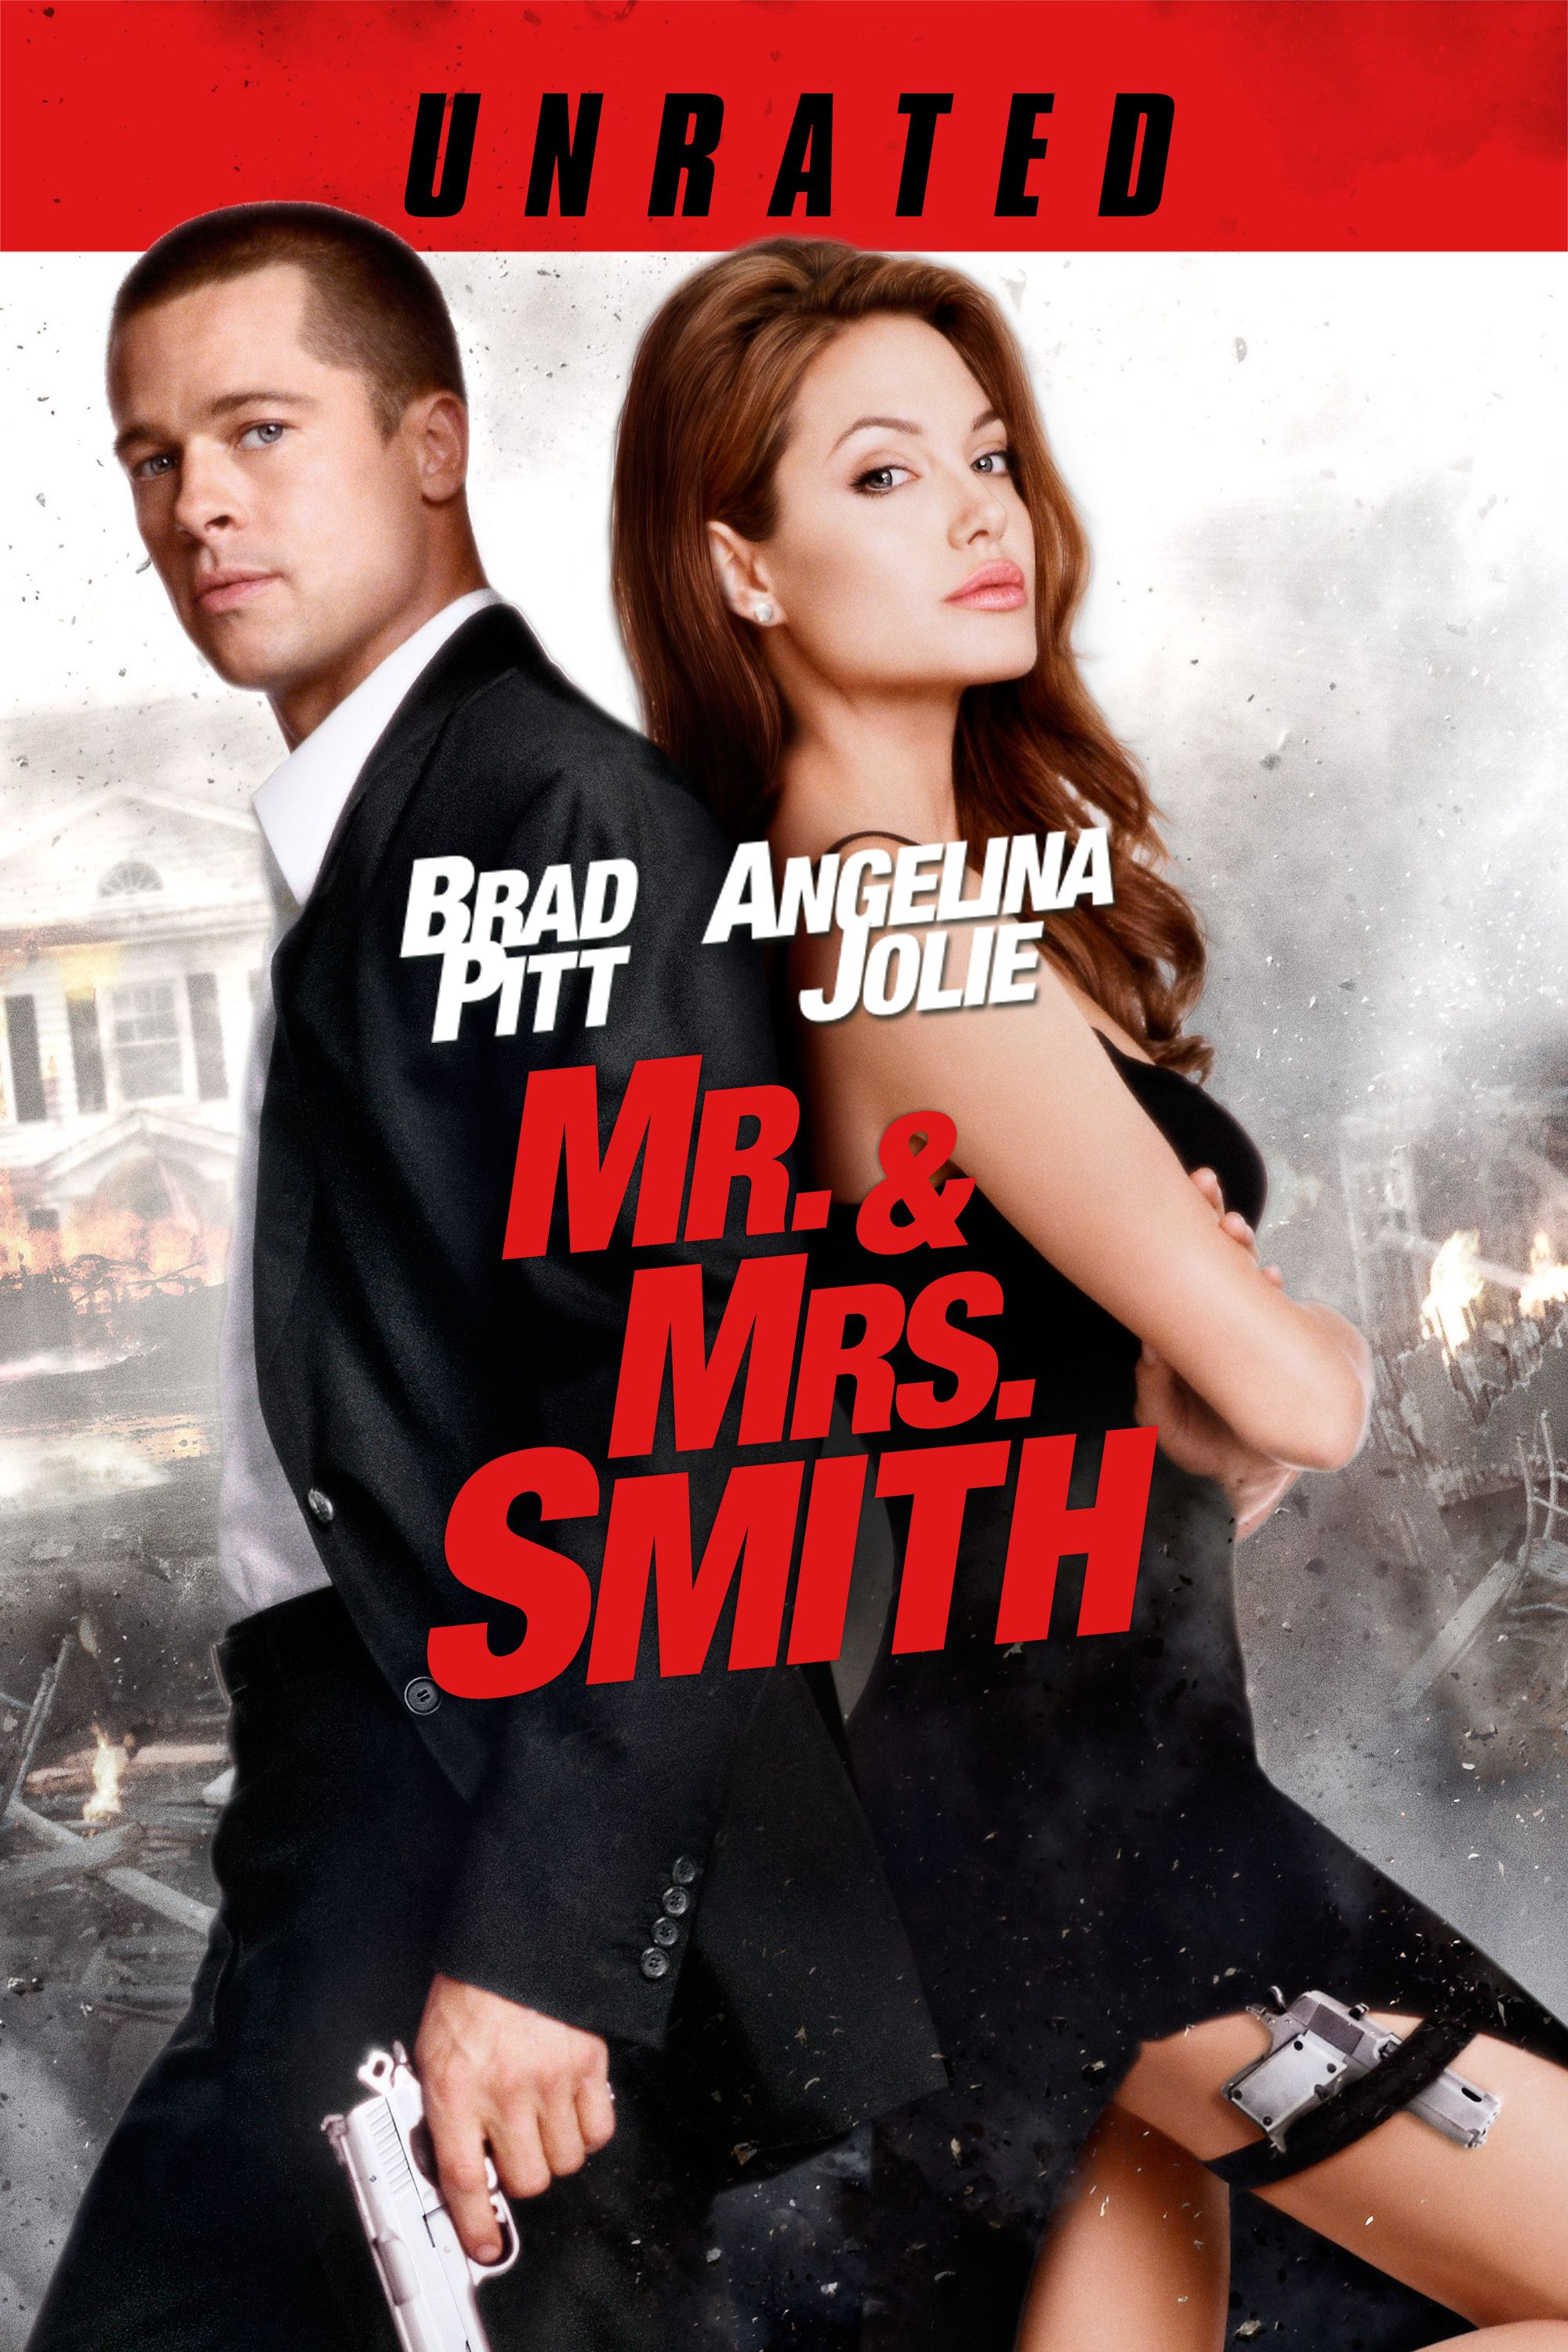 Mr. & Mrs. Smith (Unrated) Movie Poster Brad Pitt